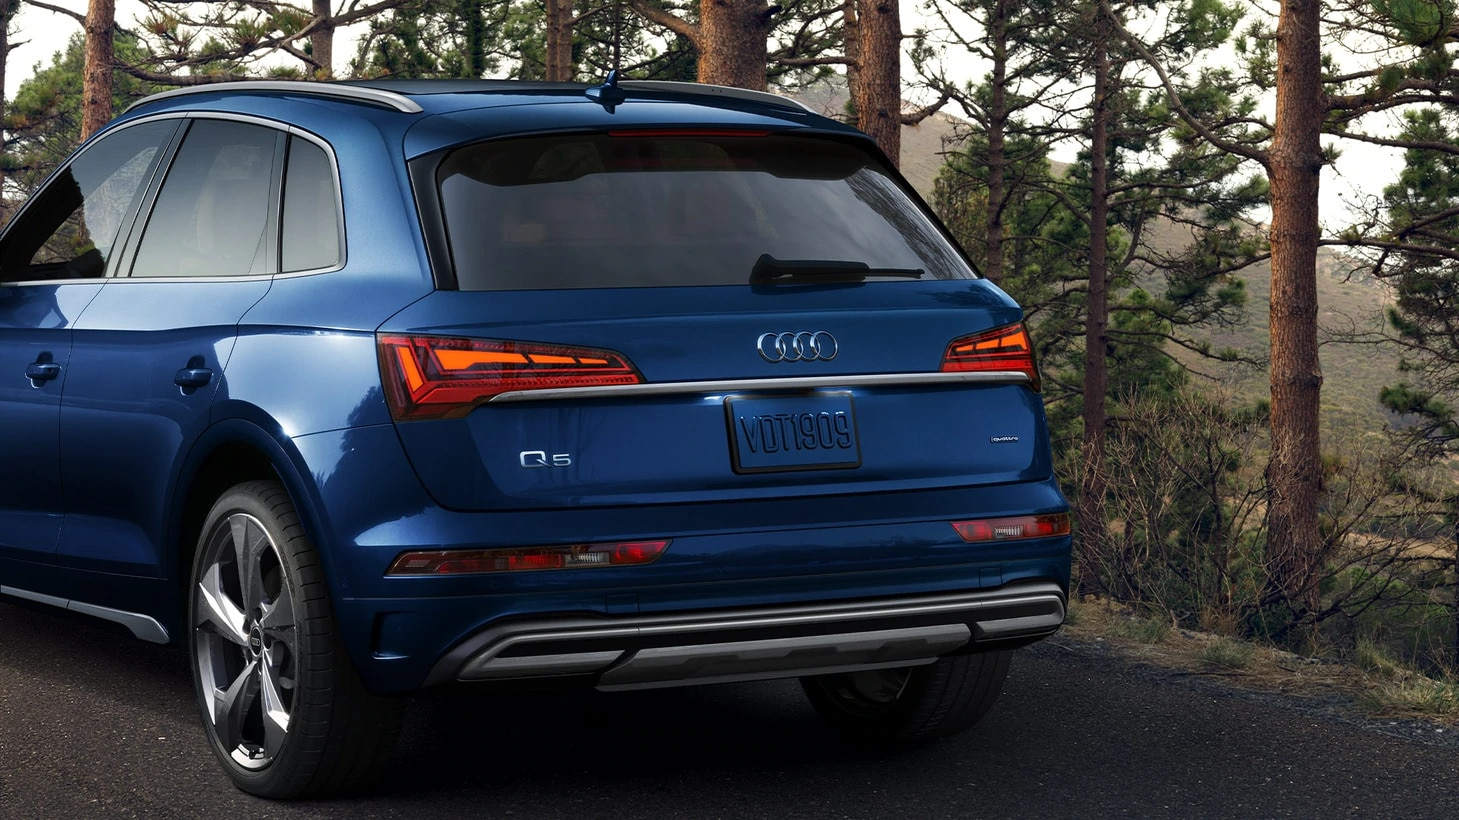 2021 Audi Q5 Prestige rear view